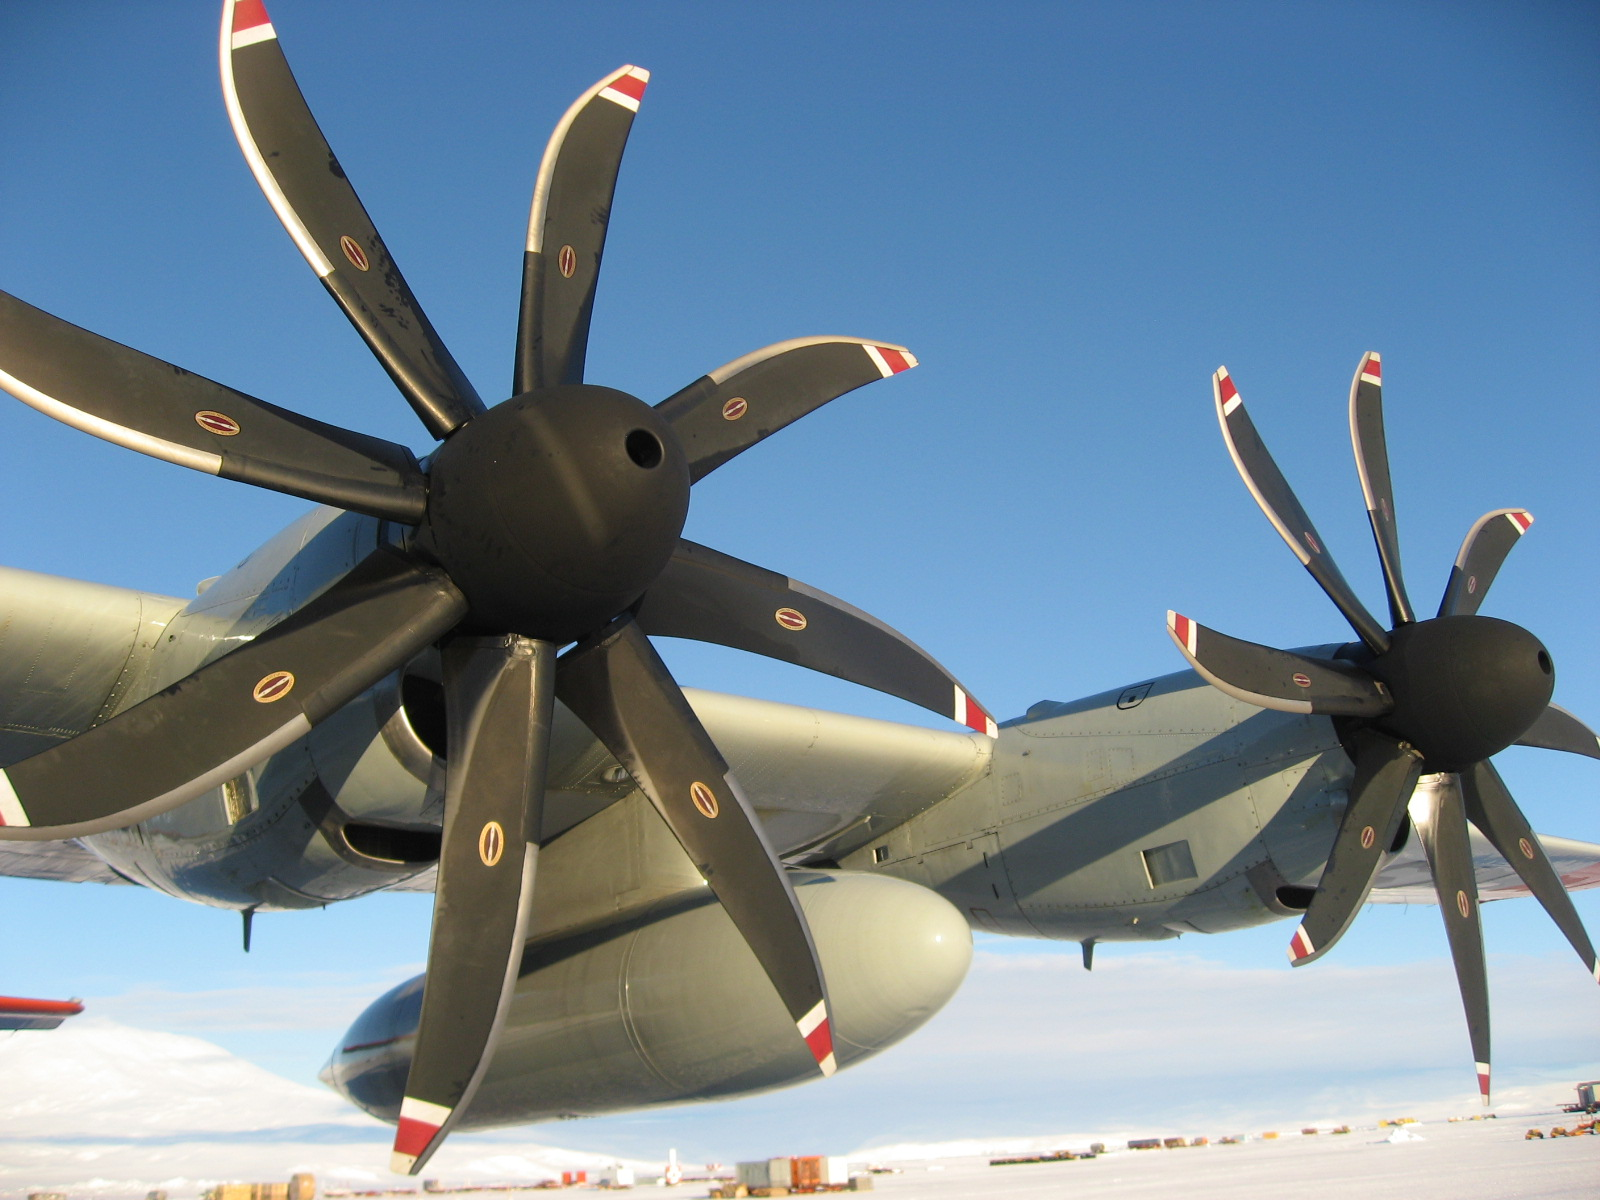 Antarctic Photo Library - Photo Details - PROPELLERS.JPG